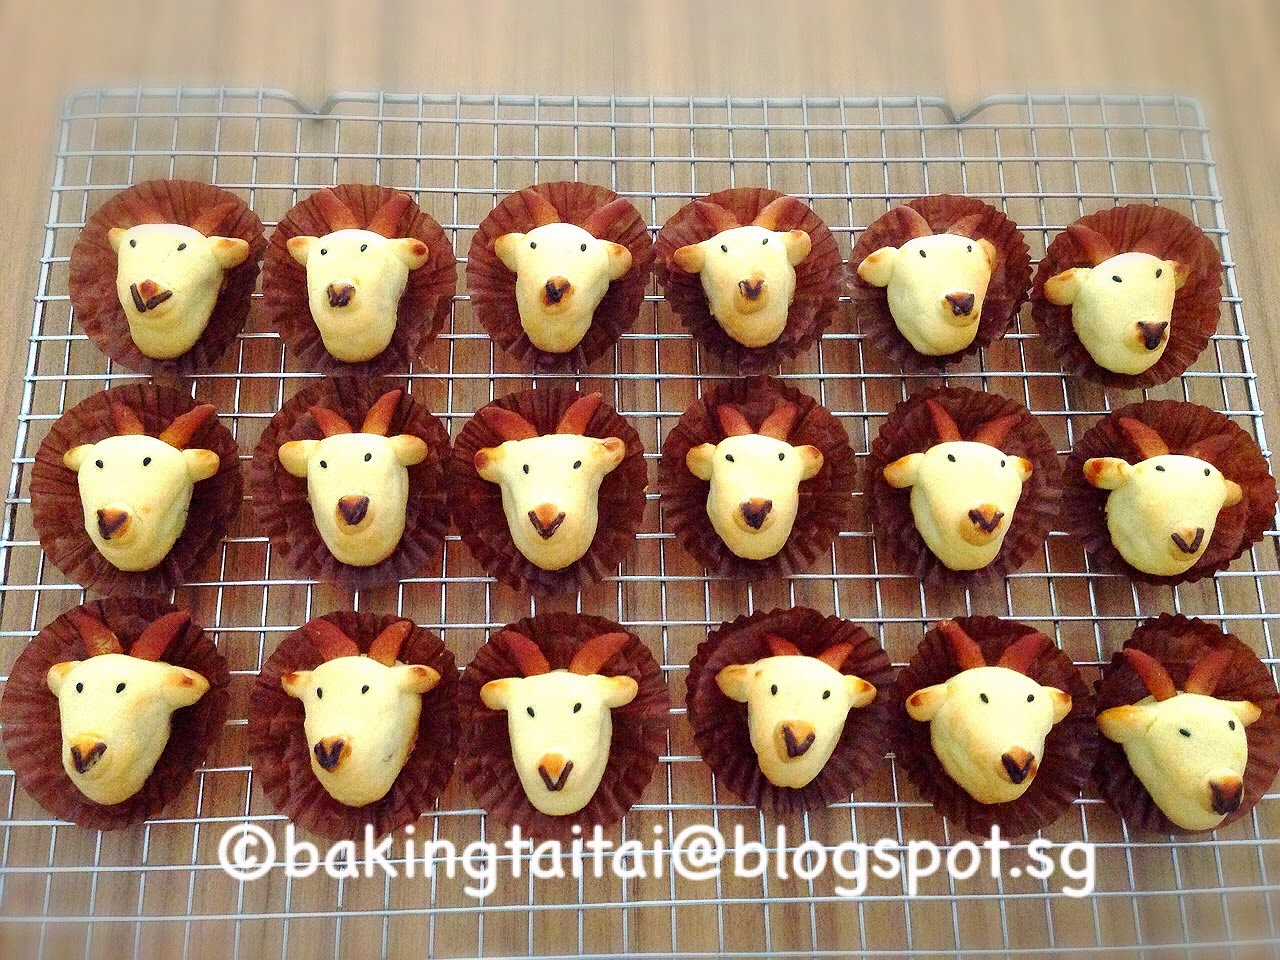 http://bakingtaitai.blogspot.sg/2015/02/cheesy-pineapple-tarts-goat-shaped.html